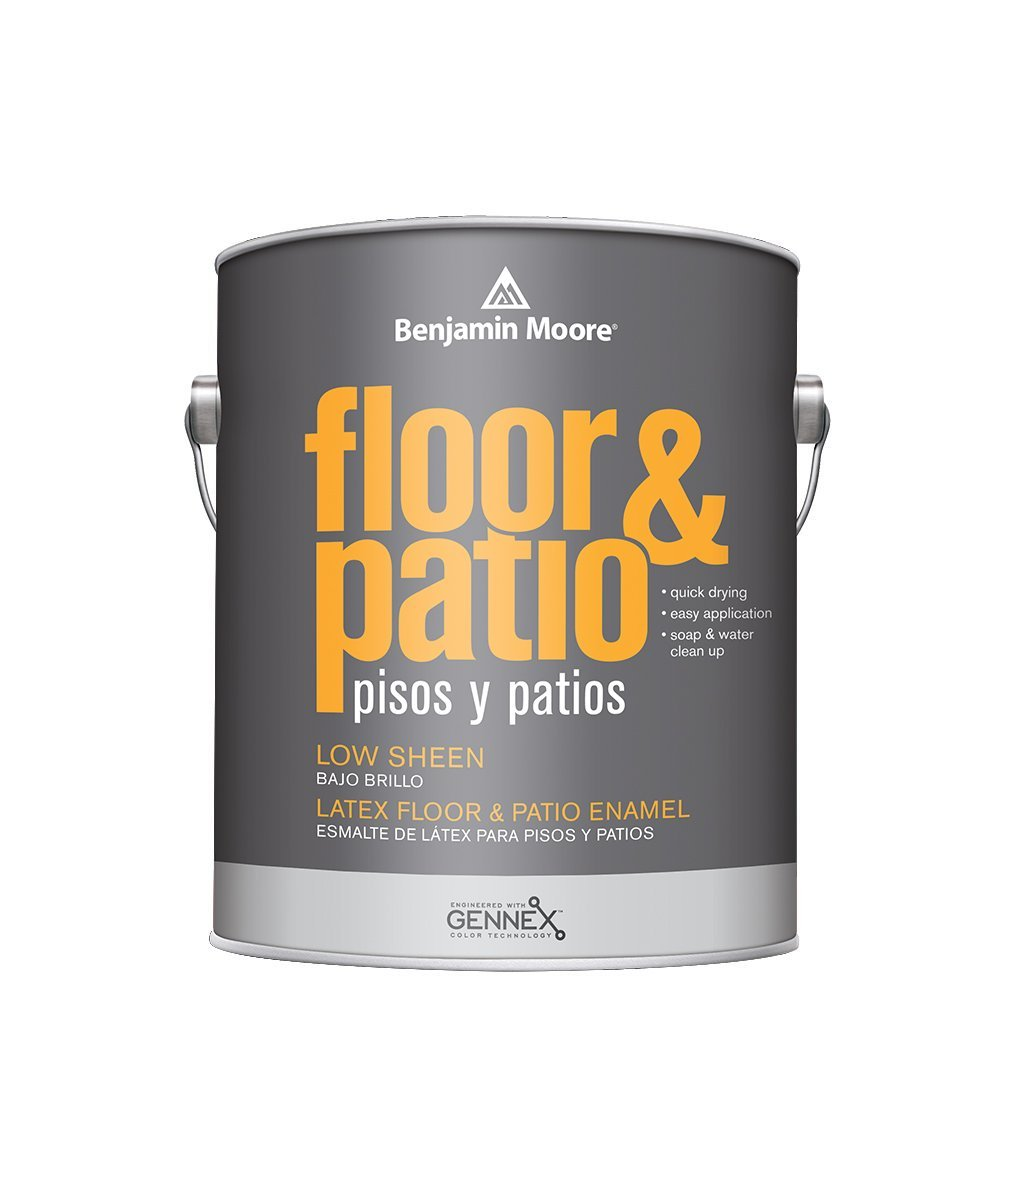 Benjamin Moore floor and patio low sheen Interior Paint available at Aboff's.